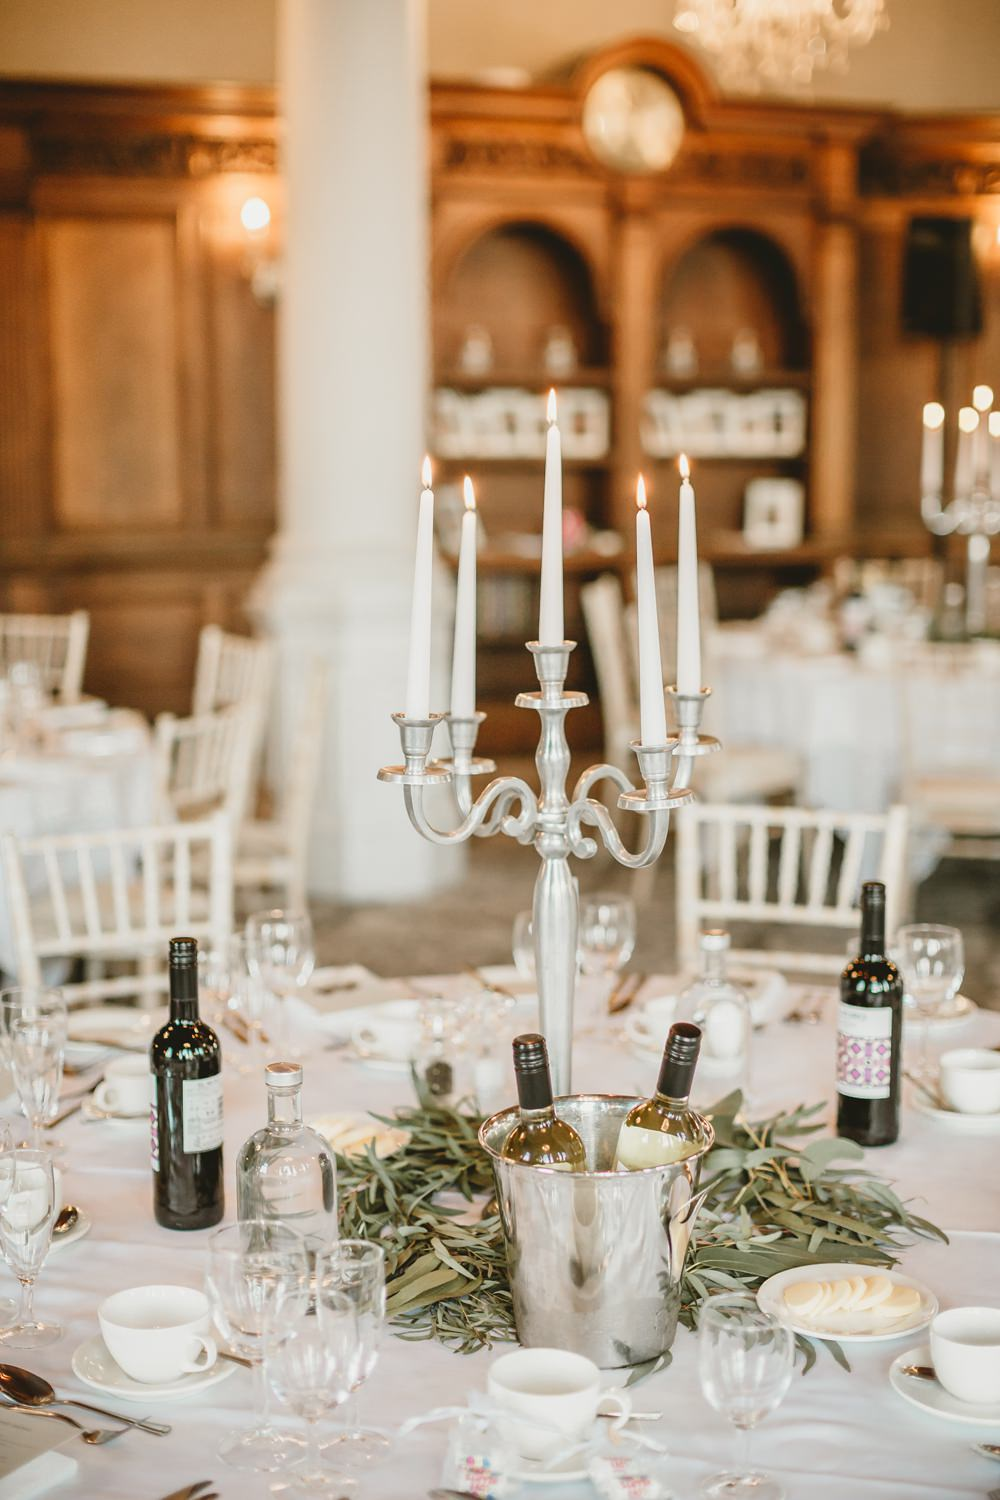 Candelabra Centrepiece Flowers Decor York Minster Wedding Amy Lou Photography